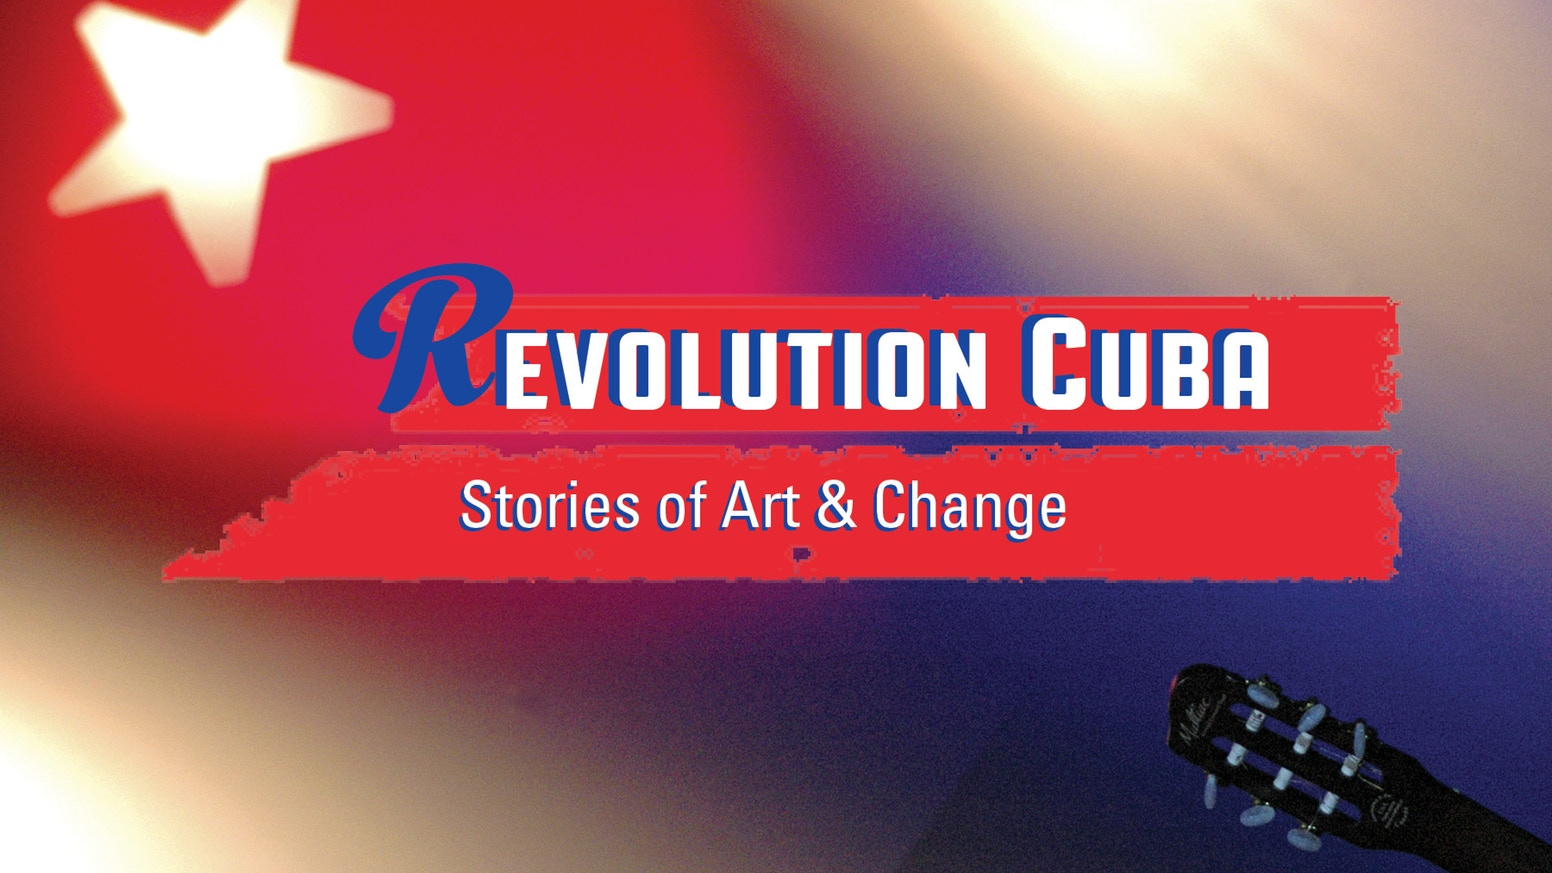 """Evolution Cuba - Rum. Jazz. Vintage Cars. Island paradise or island prison. Cuba. We read about the shortages, the lack of opportunities, the expected regime change and lucrative business deals. Lost is the remarkable debate taking place across the country, where revolutionary ideals of equality face off against the allures of the 21st century market. This is highly visible in the world of art, where money, the state, and free expression collide. In a country where """"art for the people"""" is fundamental, Evolution Cuba brings you a Cuba you don't know, with six short portraits of artists at the heart of an evolving nation."""